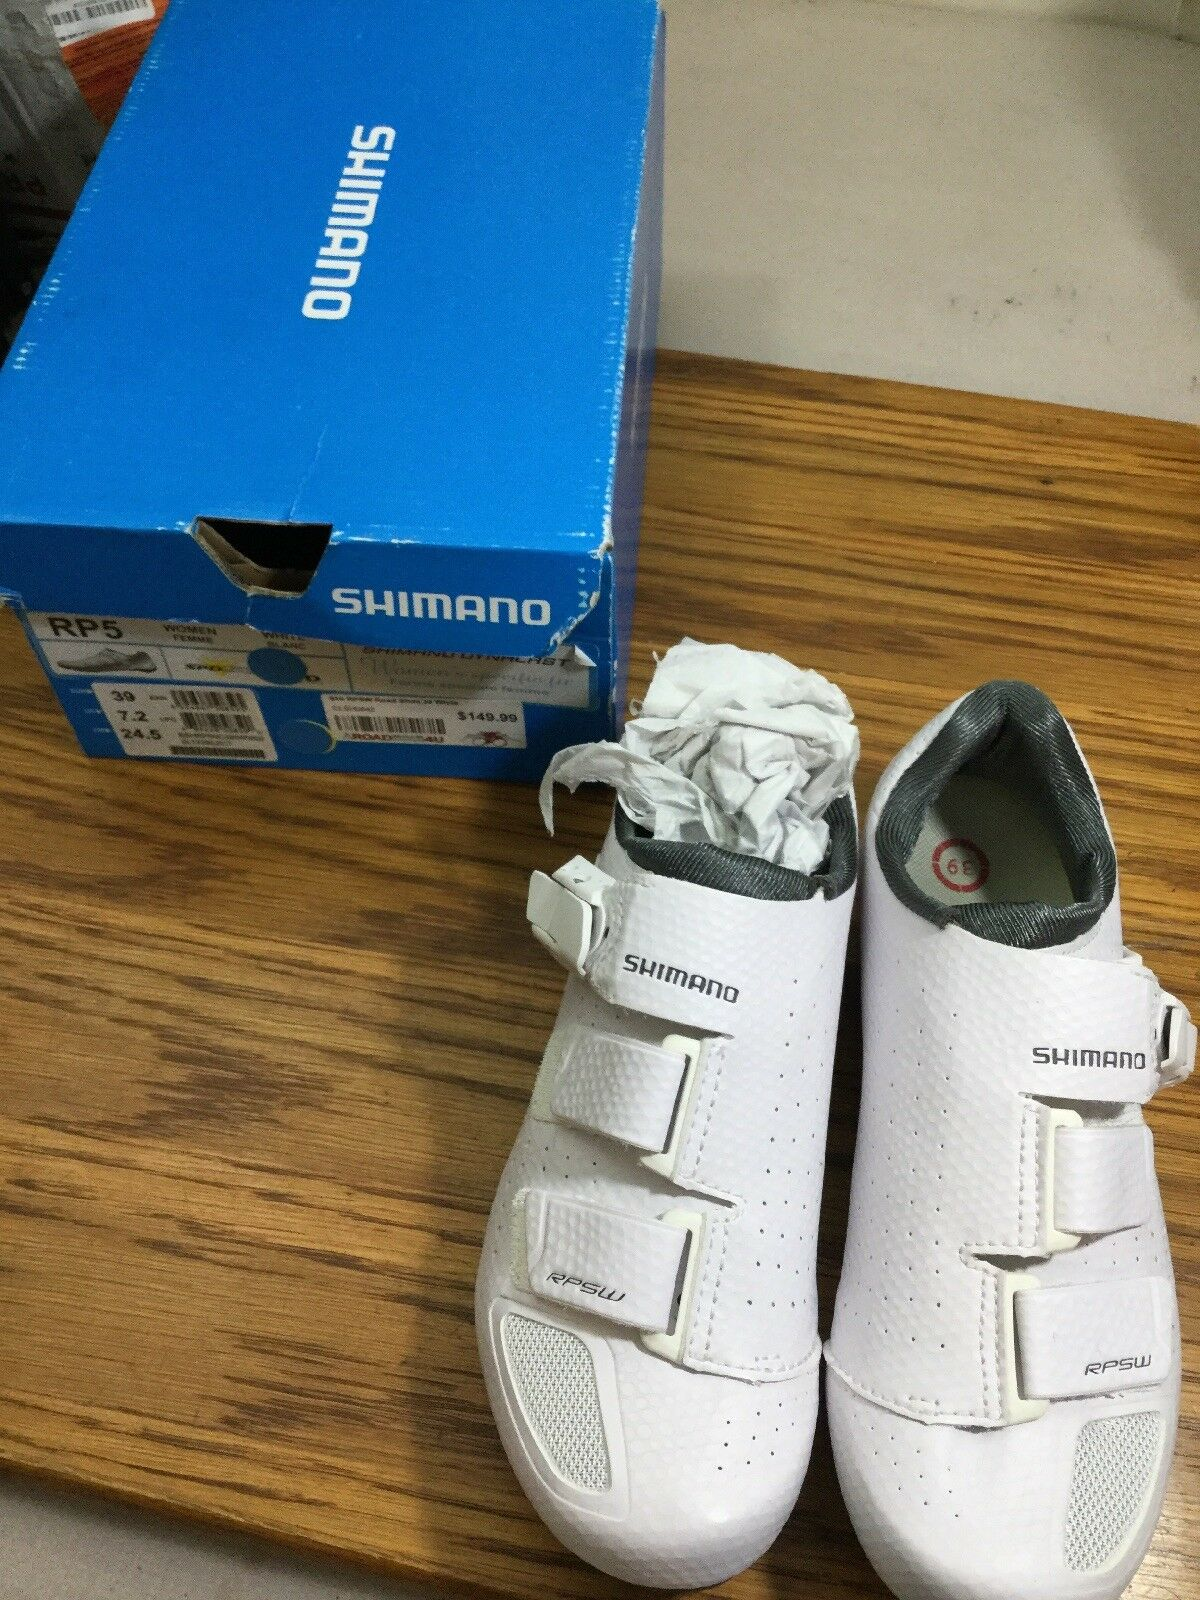 Shimano Rp5 Womens Road Cycling shoes  Size 39 Euro 7.2 Us  (6337-11)  for sale